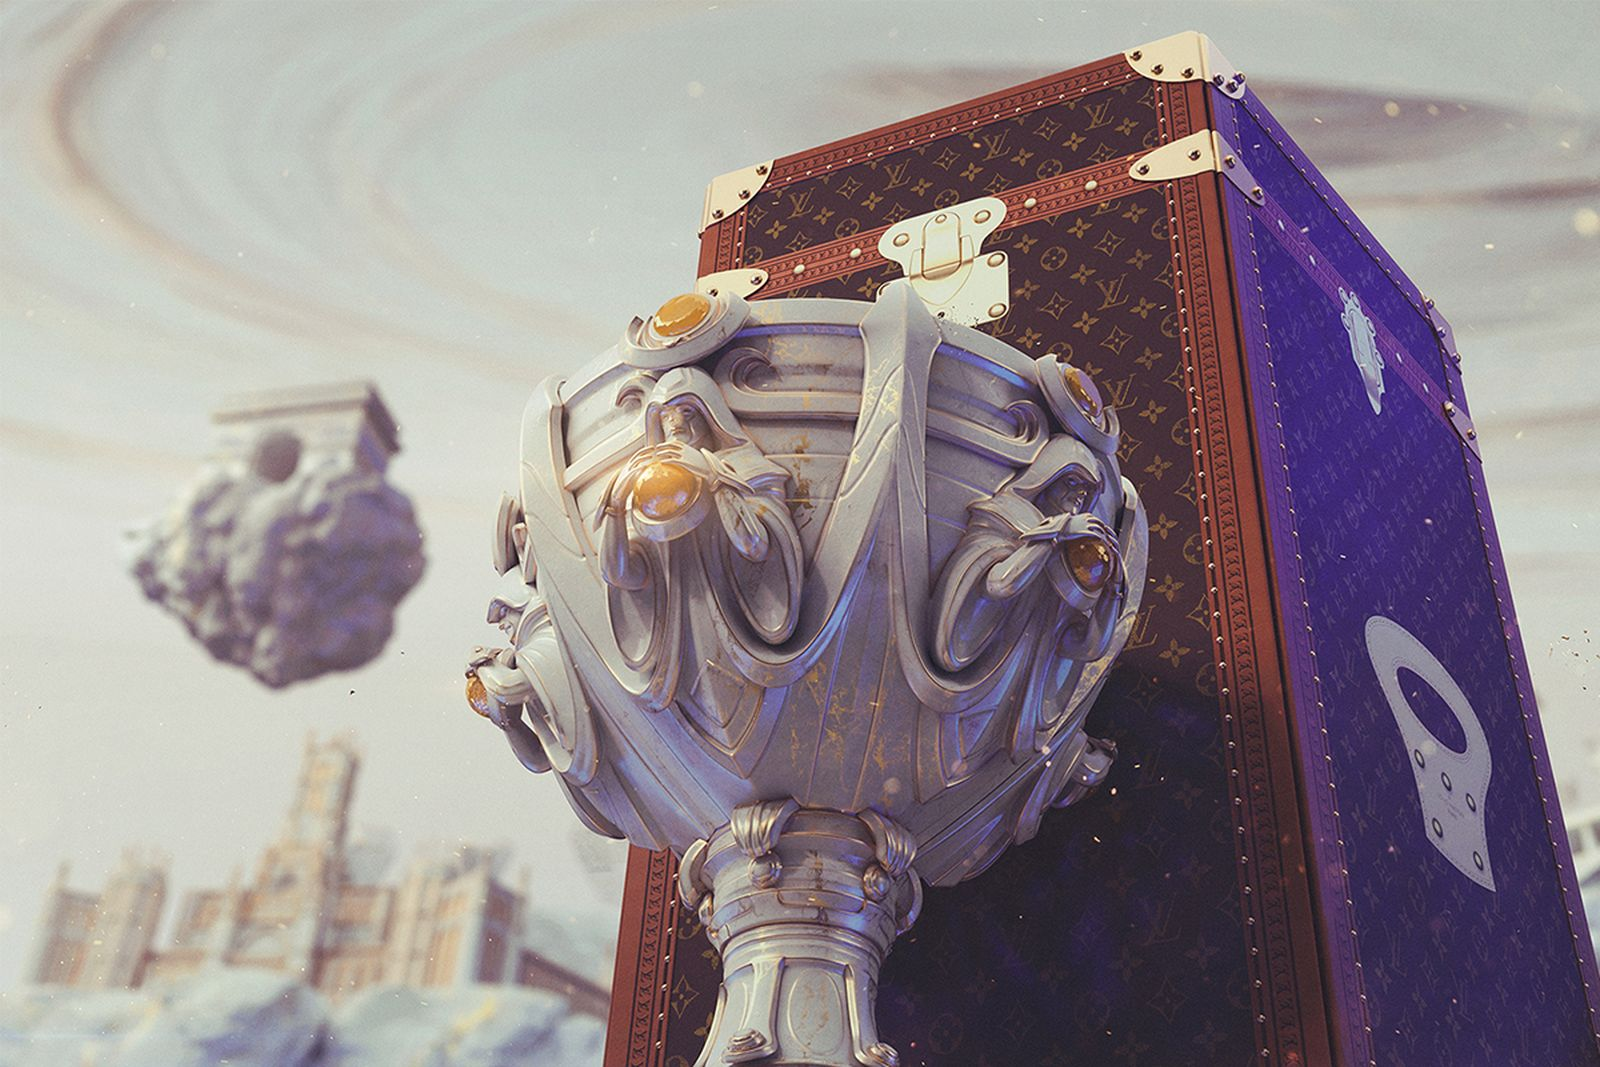 League of legends summoner's cup and Louis Vuitton trunk